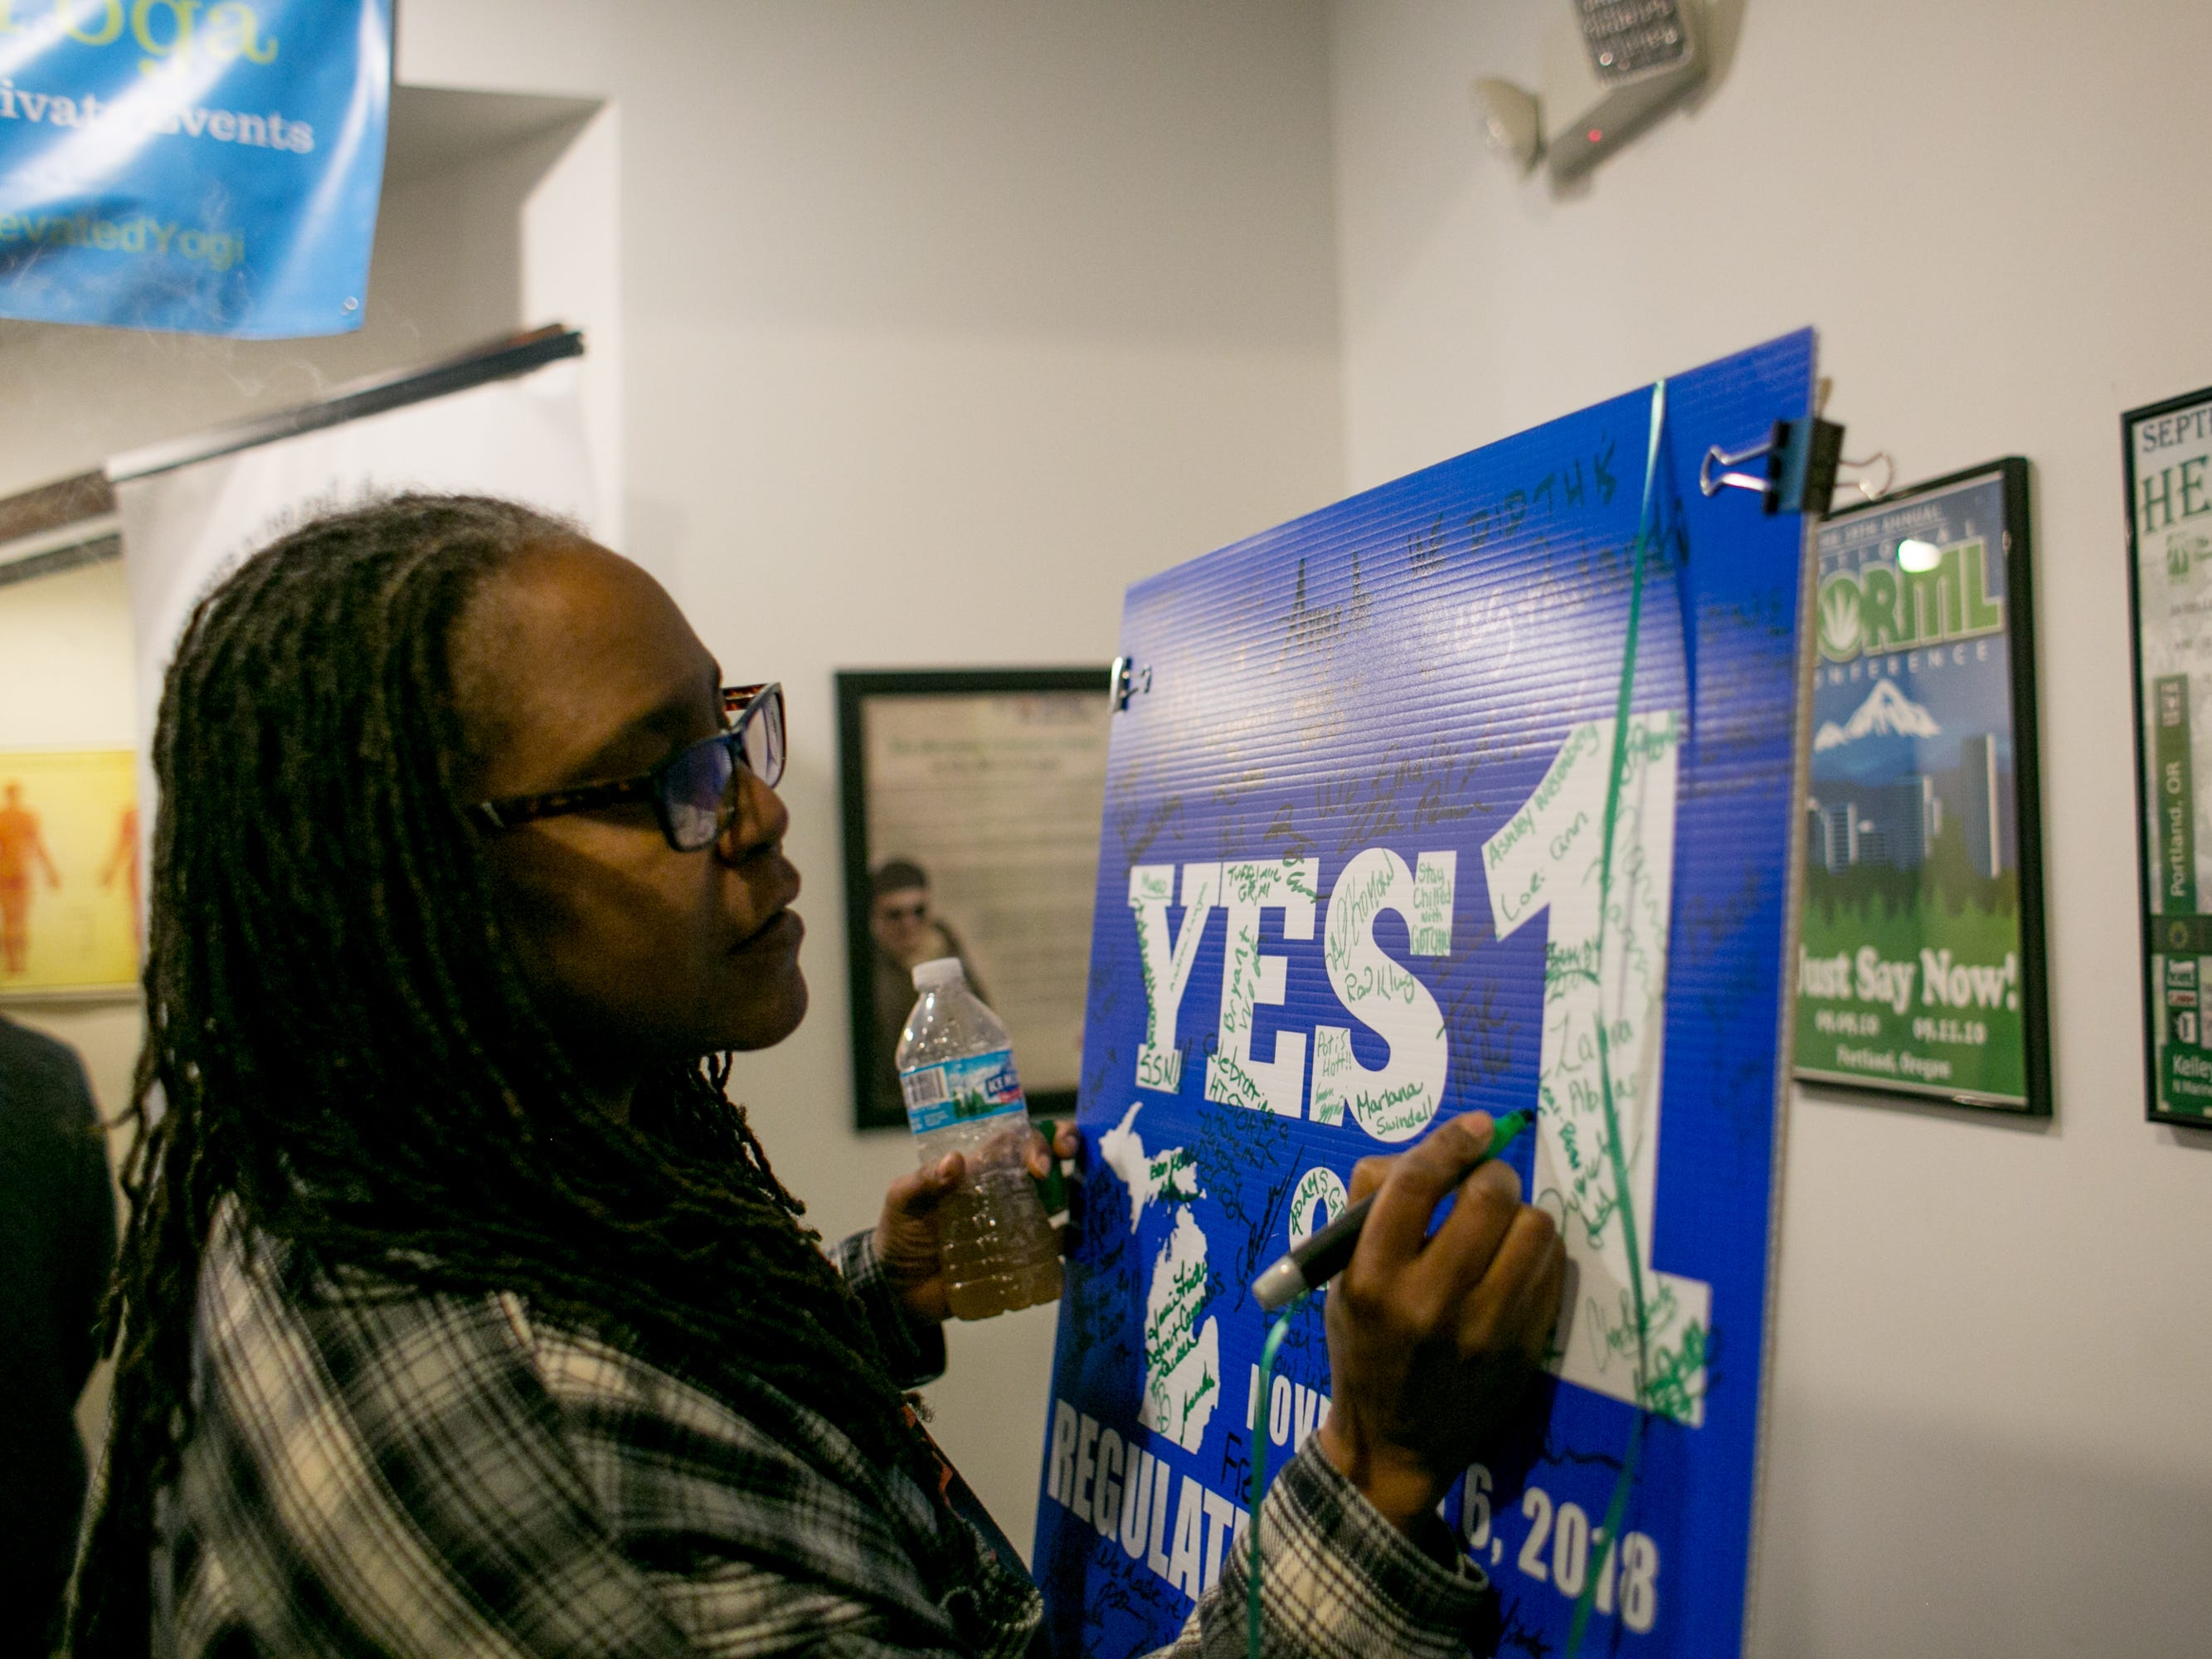 Lory Beth Coolidge, 50, of Detroit signs a poster at a party celebrating the first day of legal recreational marijuana use.